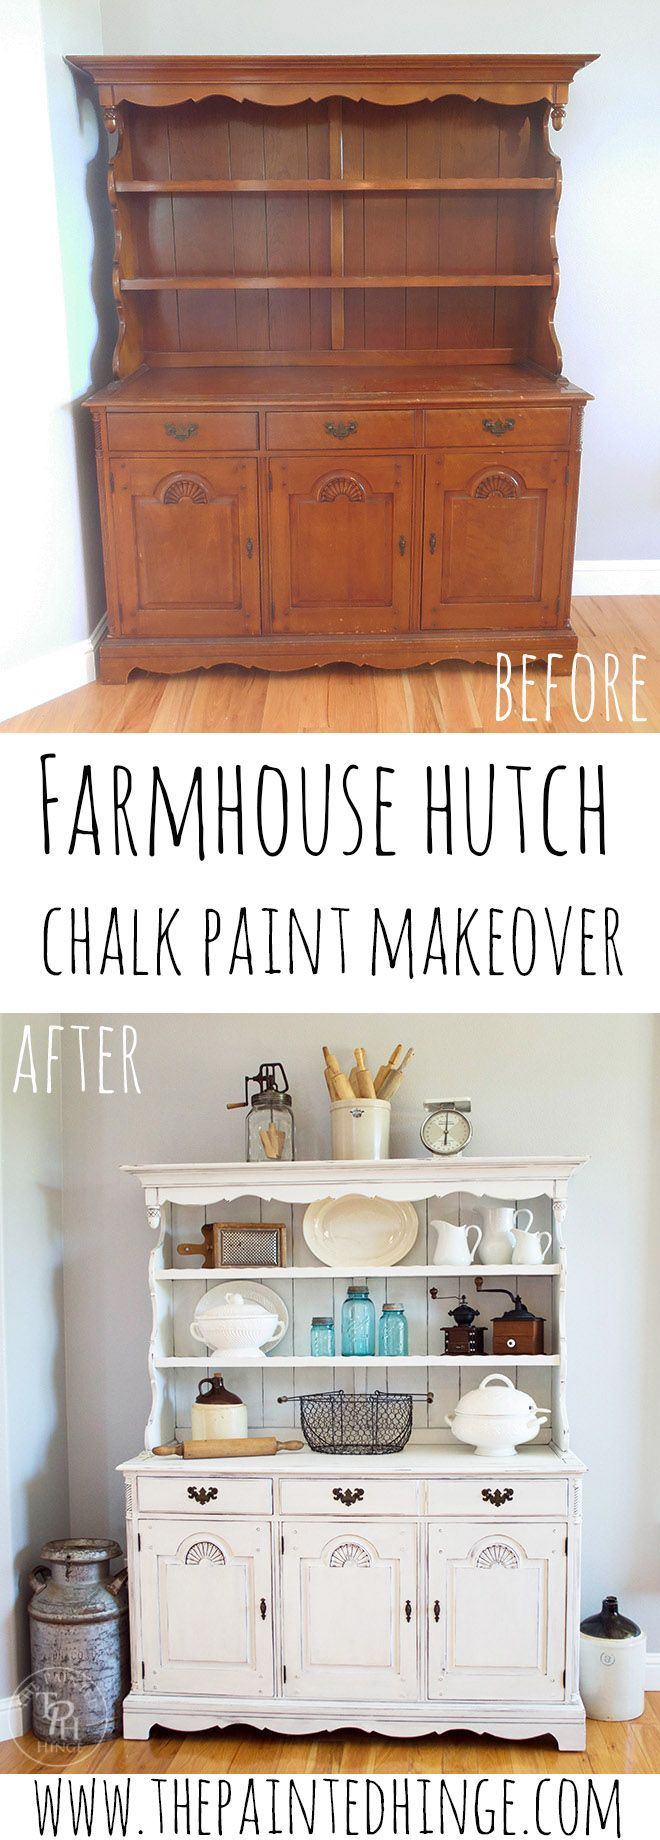 Shabby Chic Kitchen Design 17 Best Ideas About Country Chic Kitchen On Pinterest Country